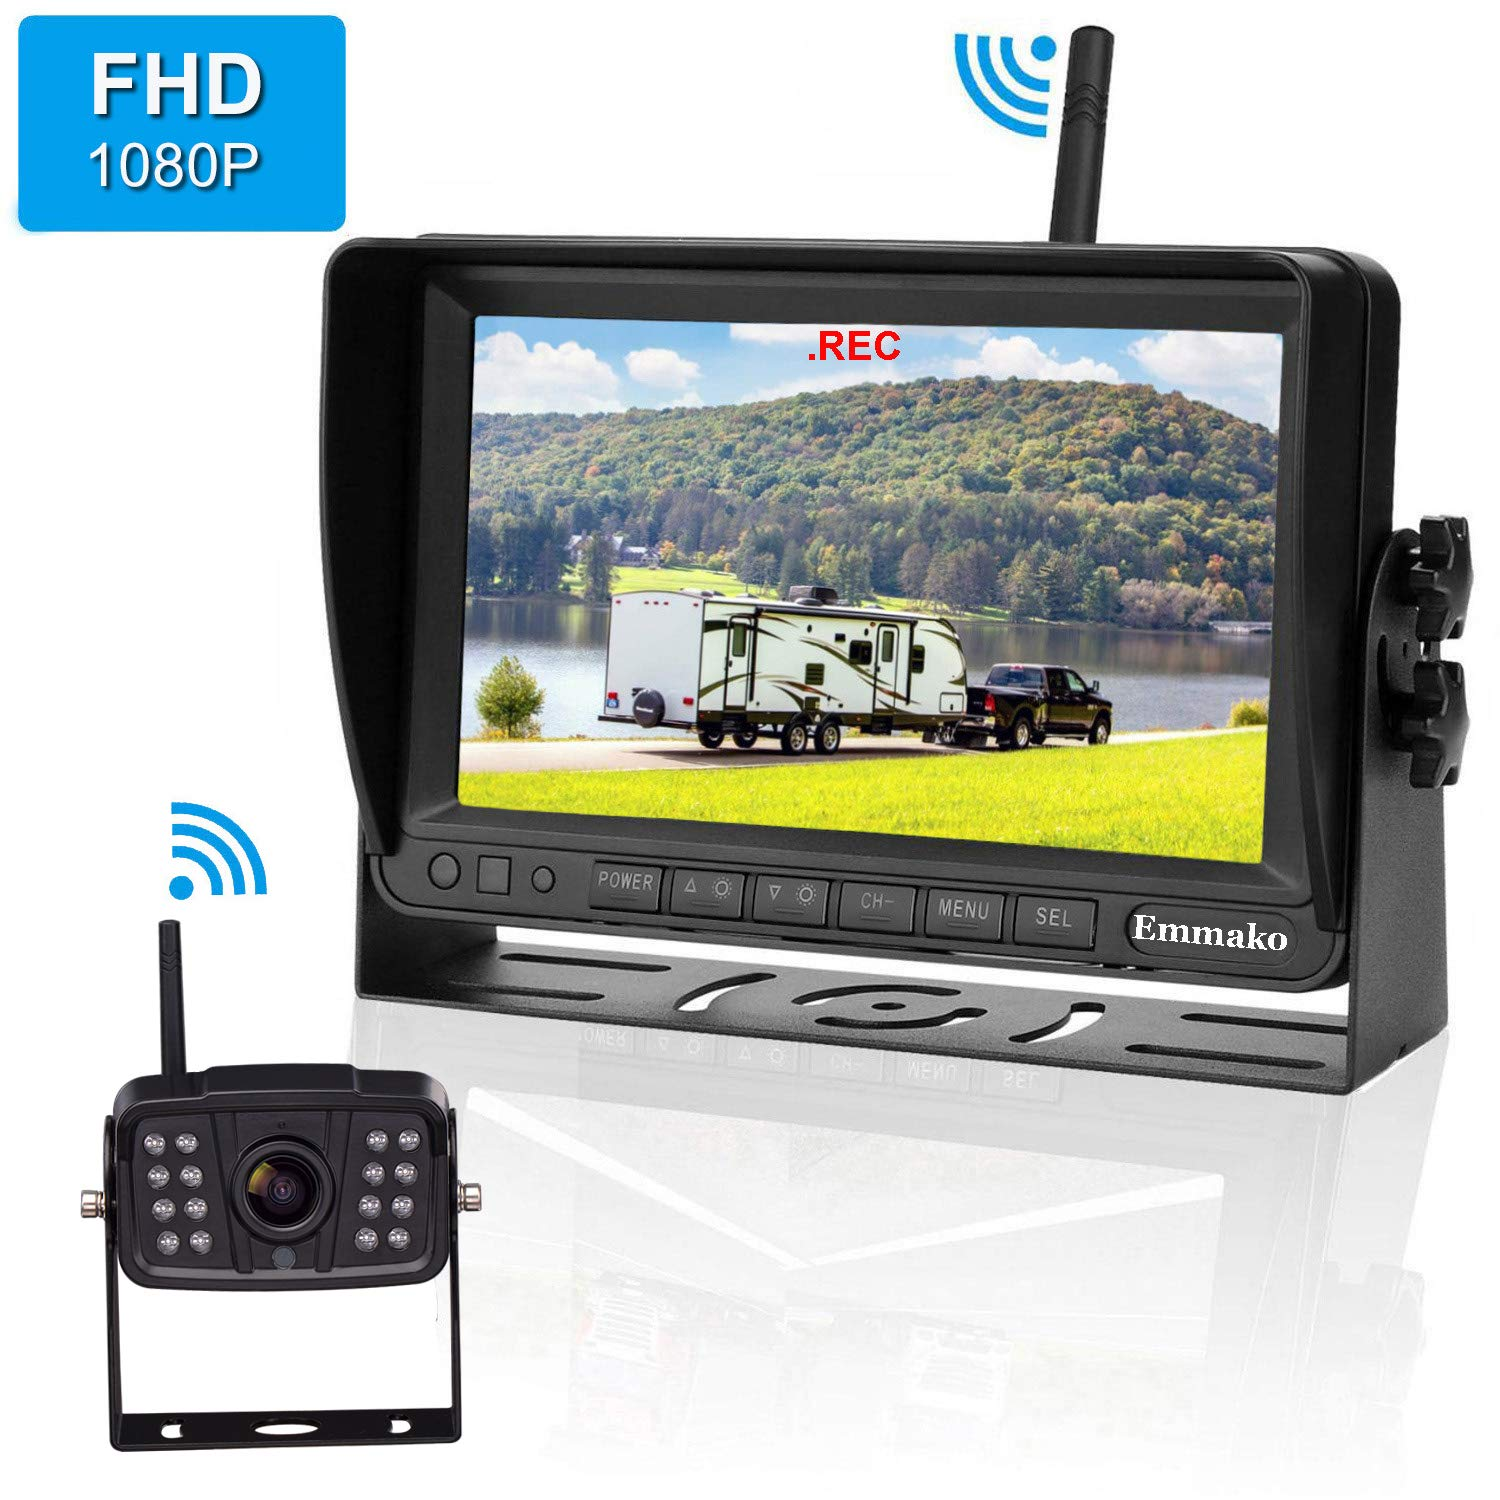 Emmako FHD 1080P Digital Wireless Backup Camera With 7'' DVR Monitor Support Split/Quard Screen  For Trailers,RV,5th Wheels High-Speed Observation System Adjustable Rear/Front View, Guide Lines ON/Off by Emmako